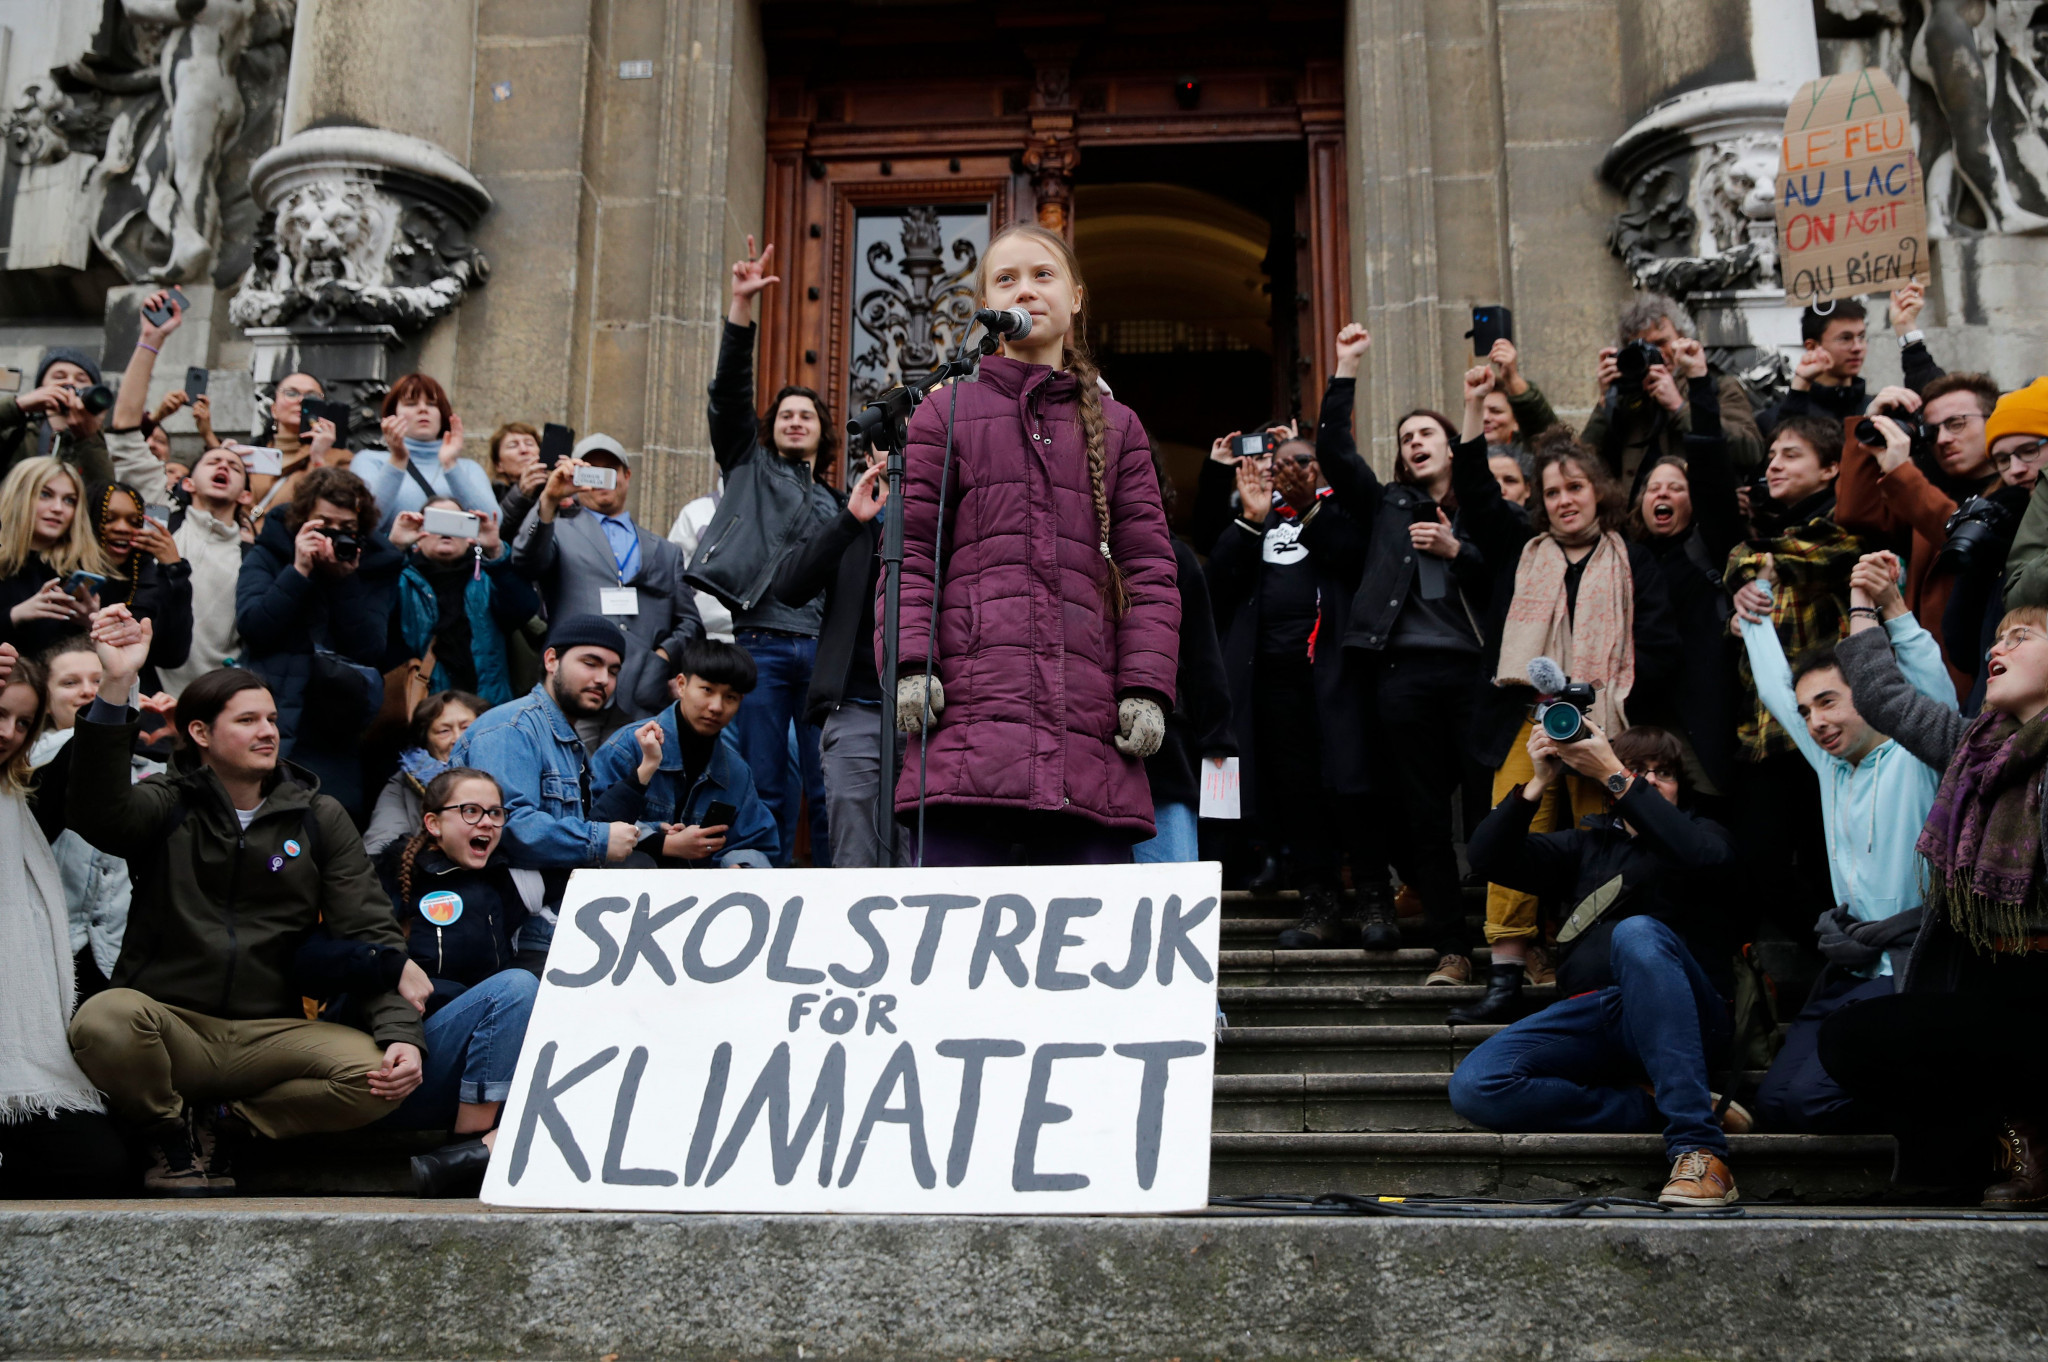 Thunberg warns world leaders at packed demonstration during Lausanne 2020